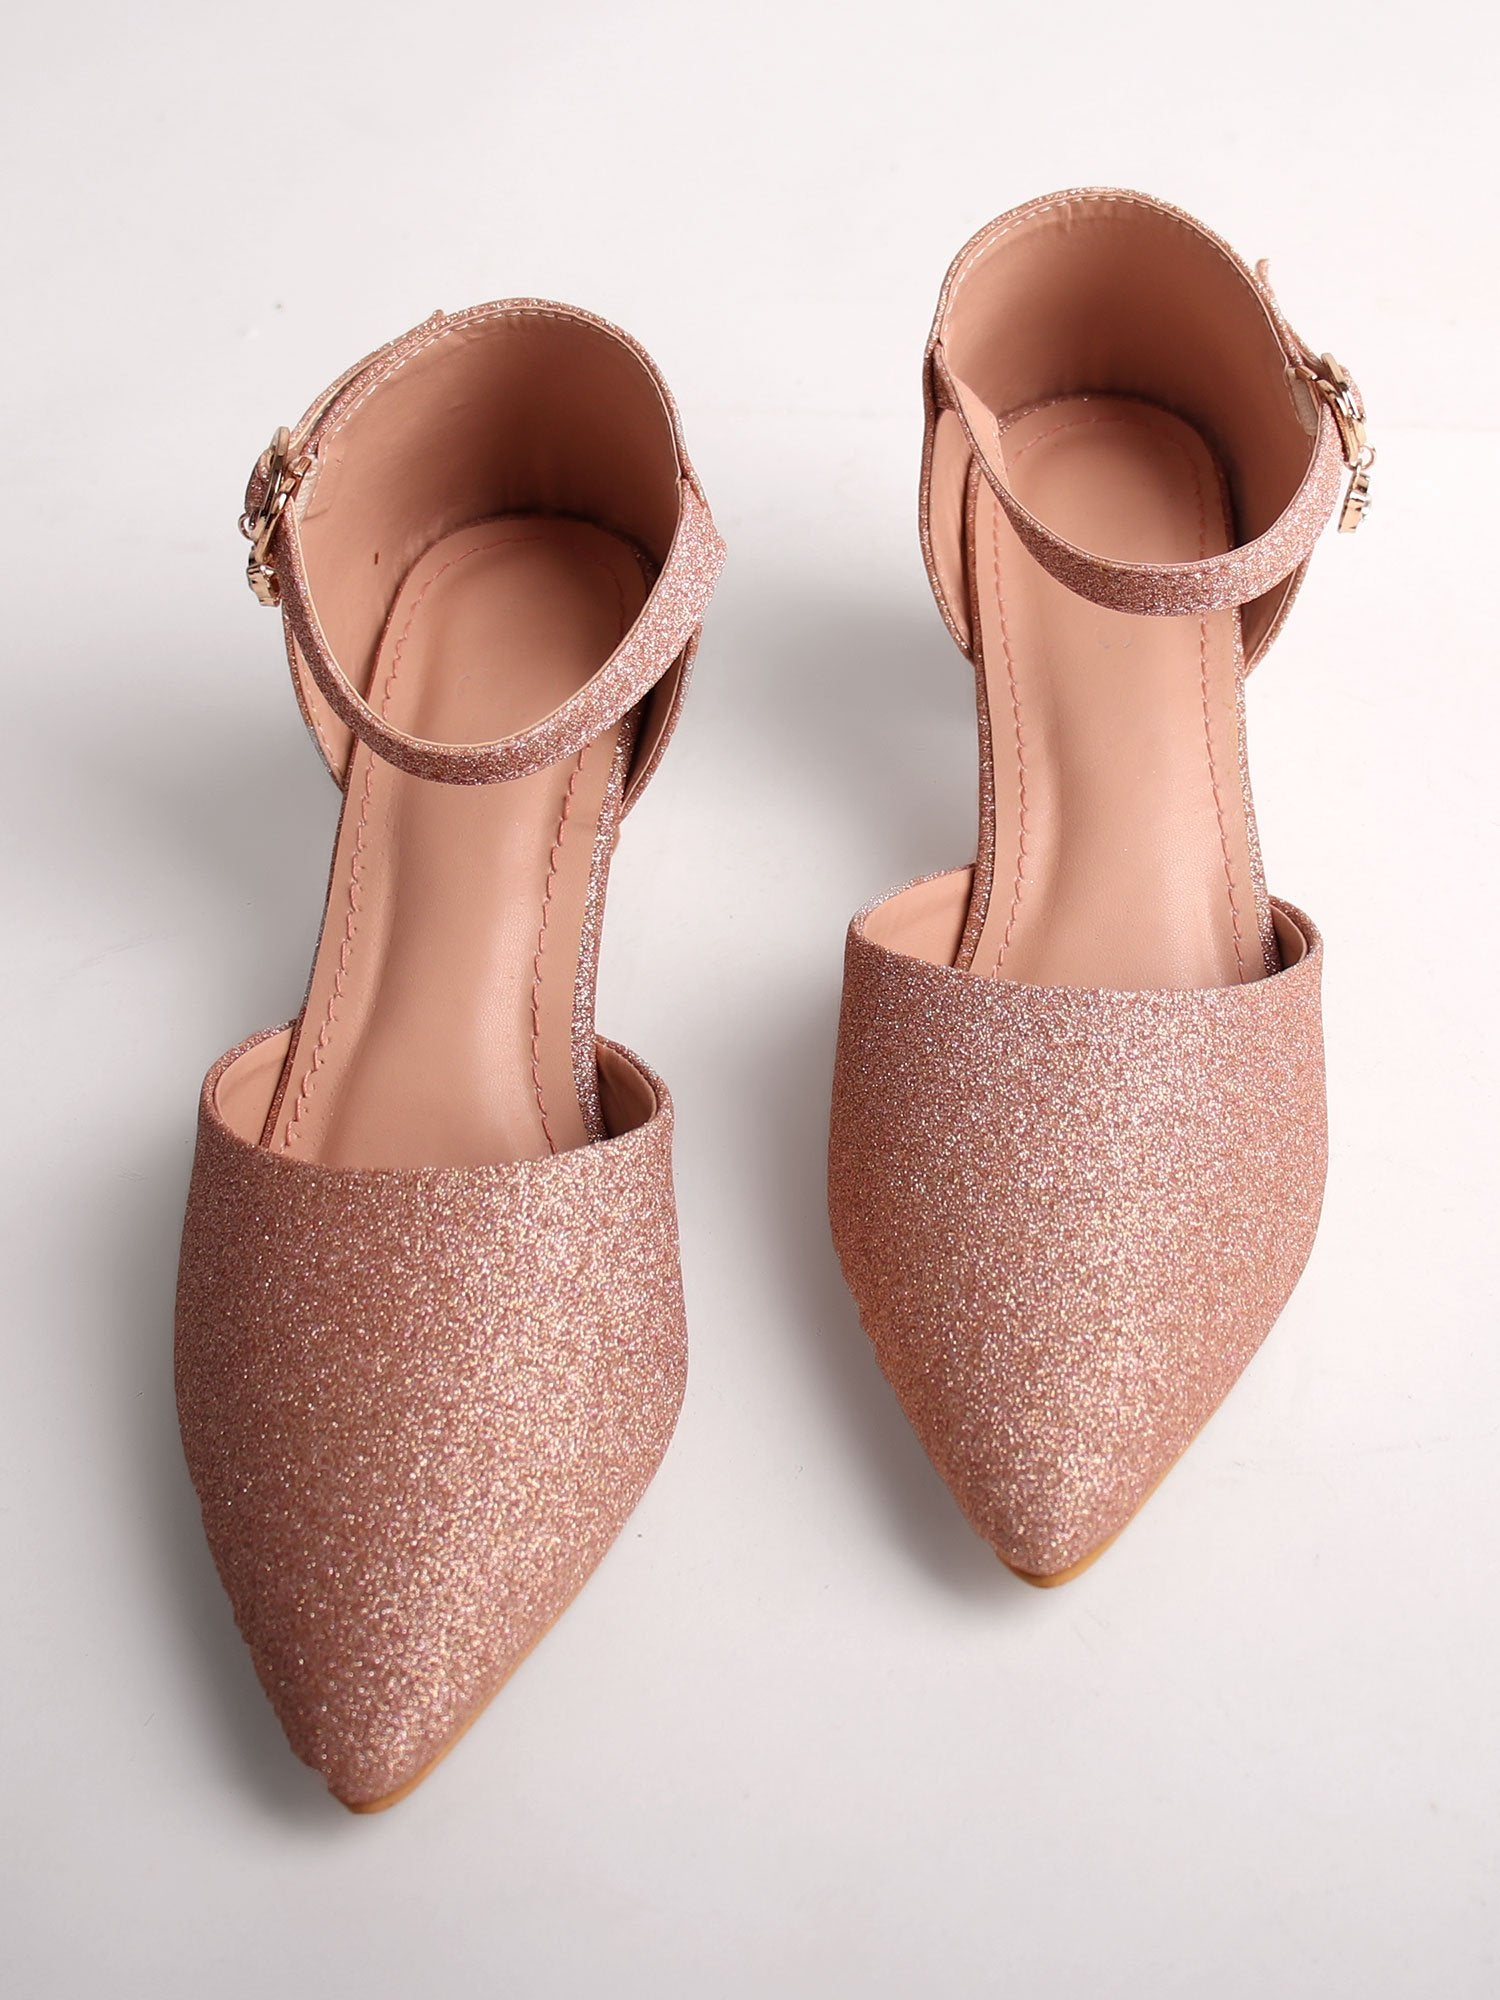 SHIMMERY ROSE GOLD KITTEN HEELS